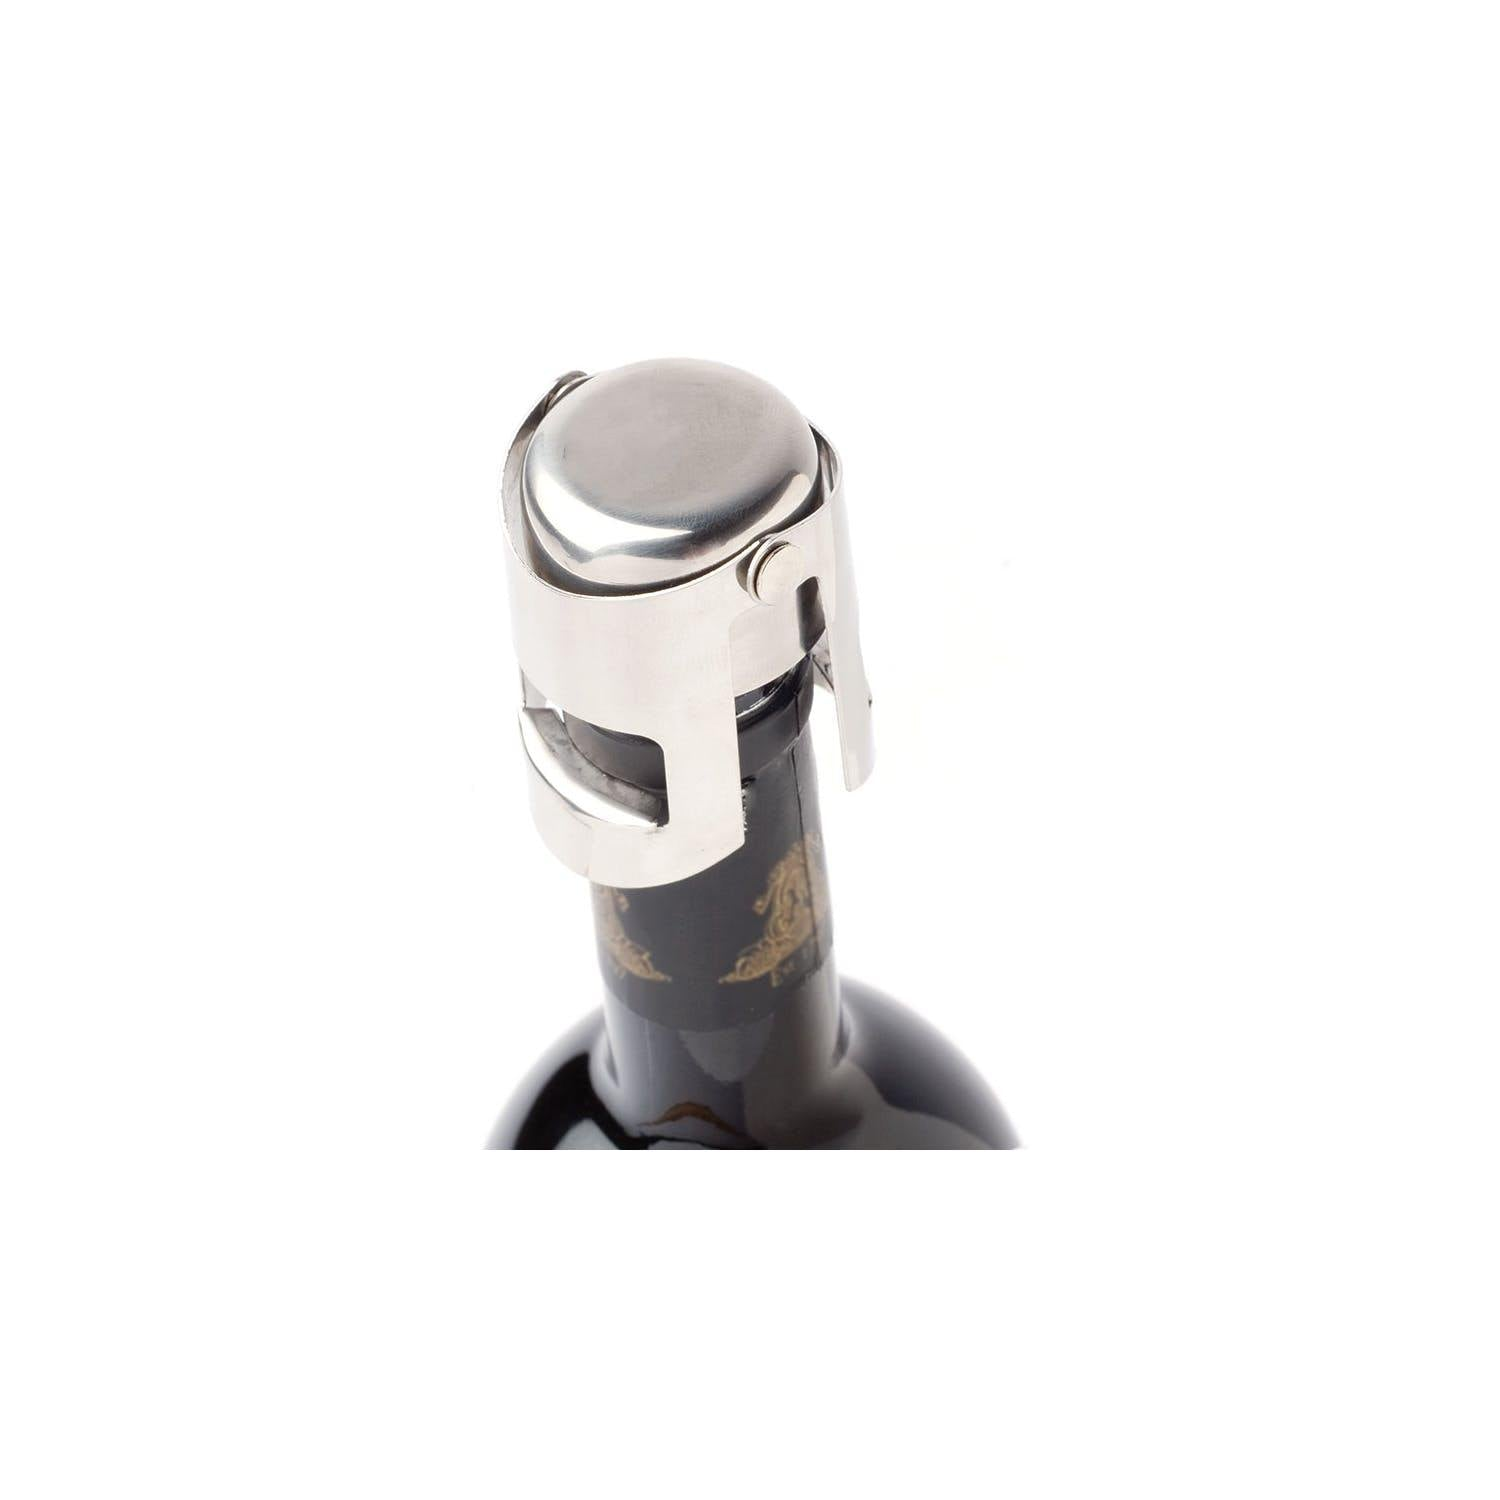 Champagne Bottle Stopper